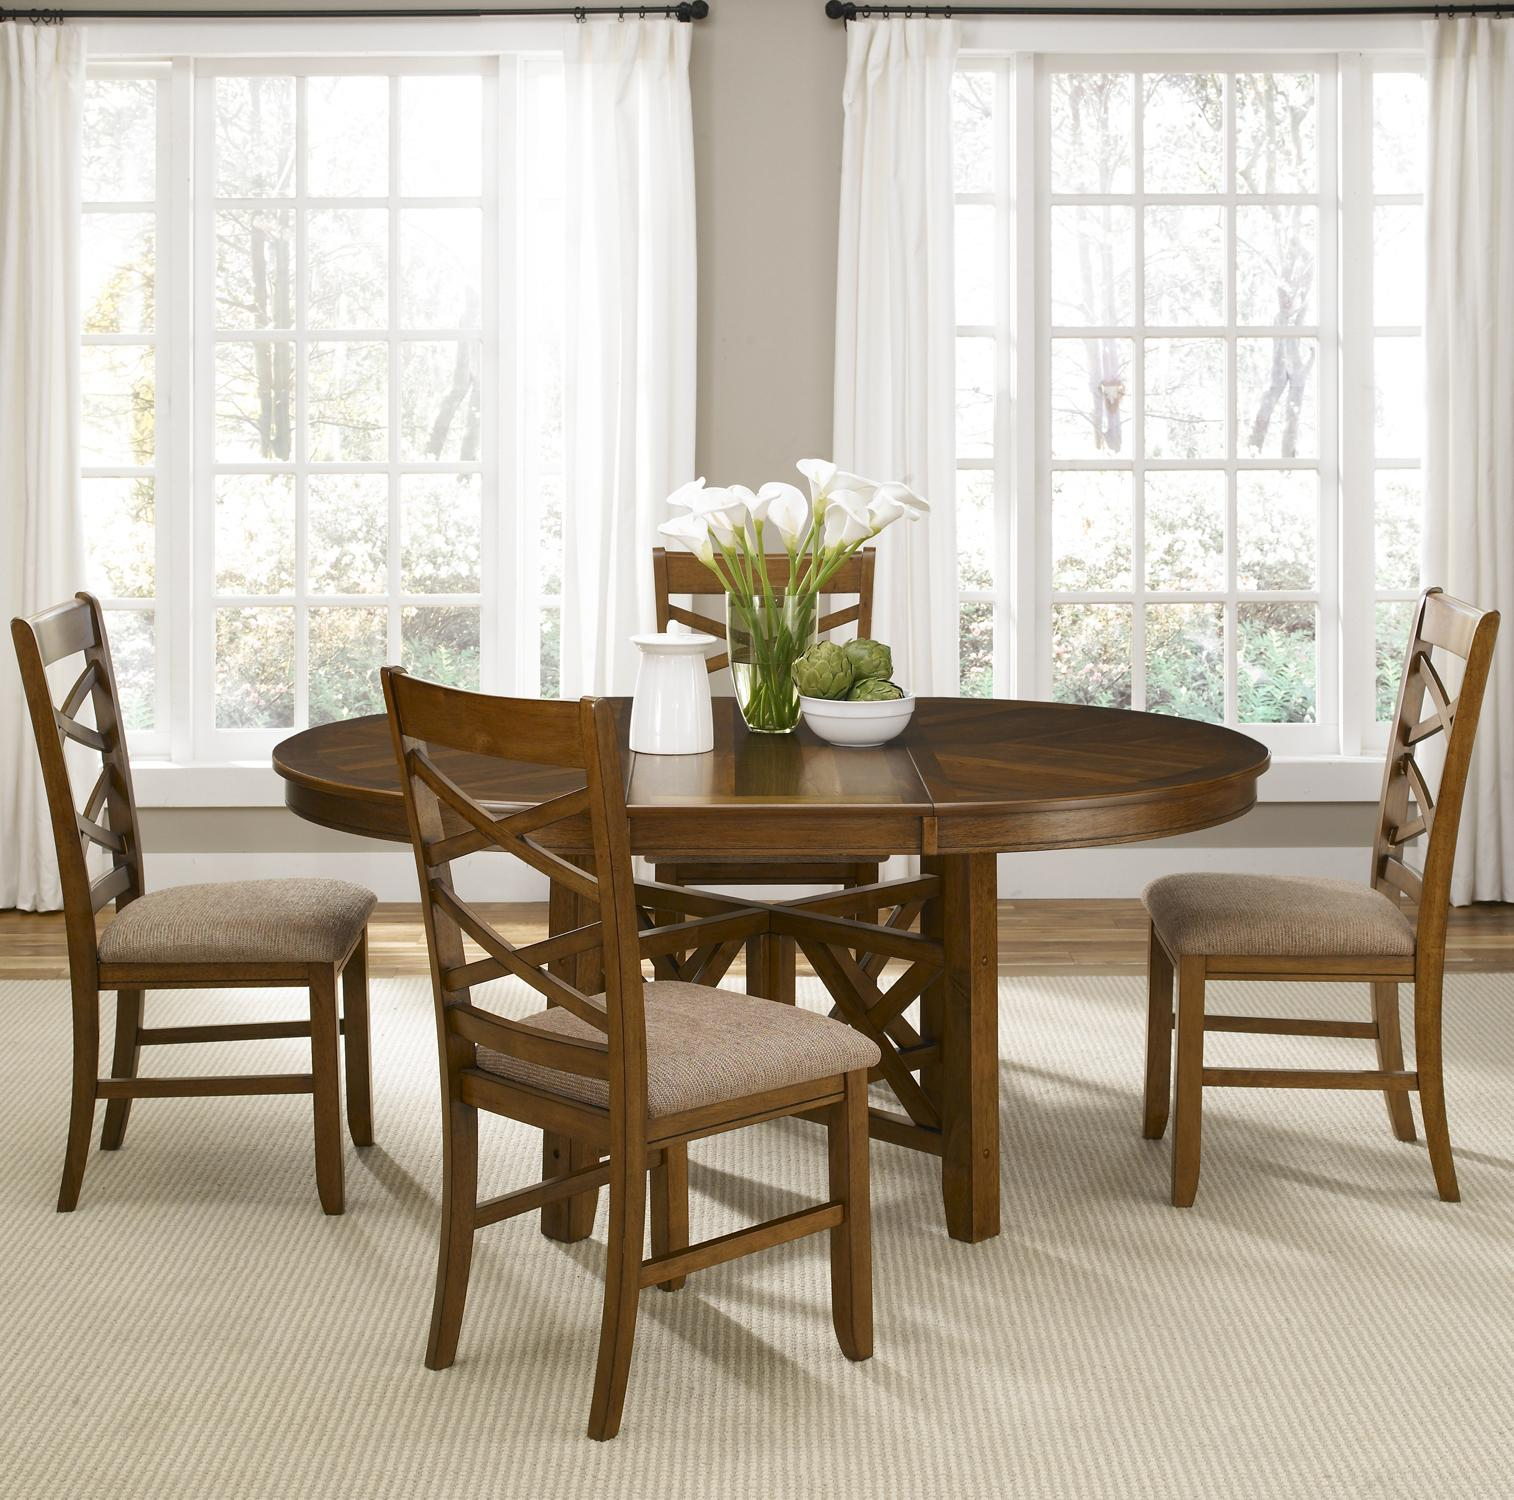 Five Piece Oval Table And Side Chair Dining Set By Liberty Furniture